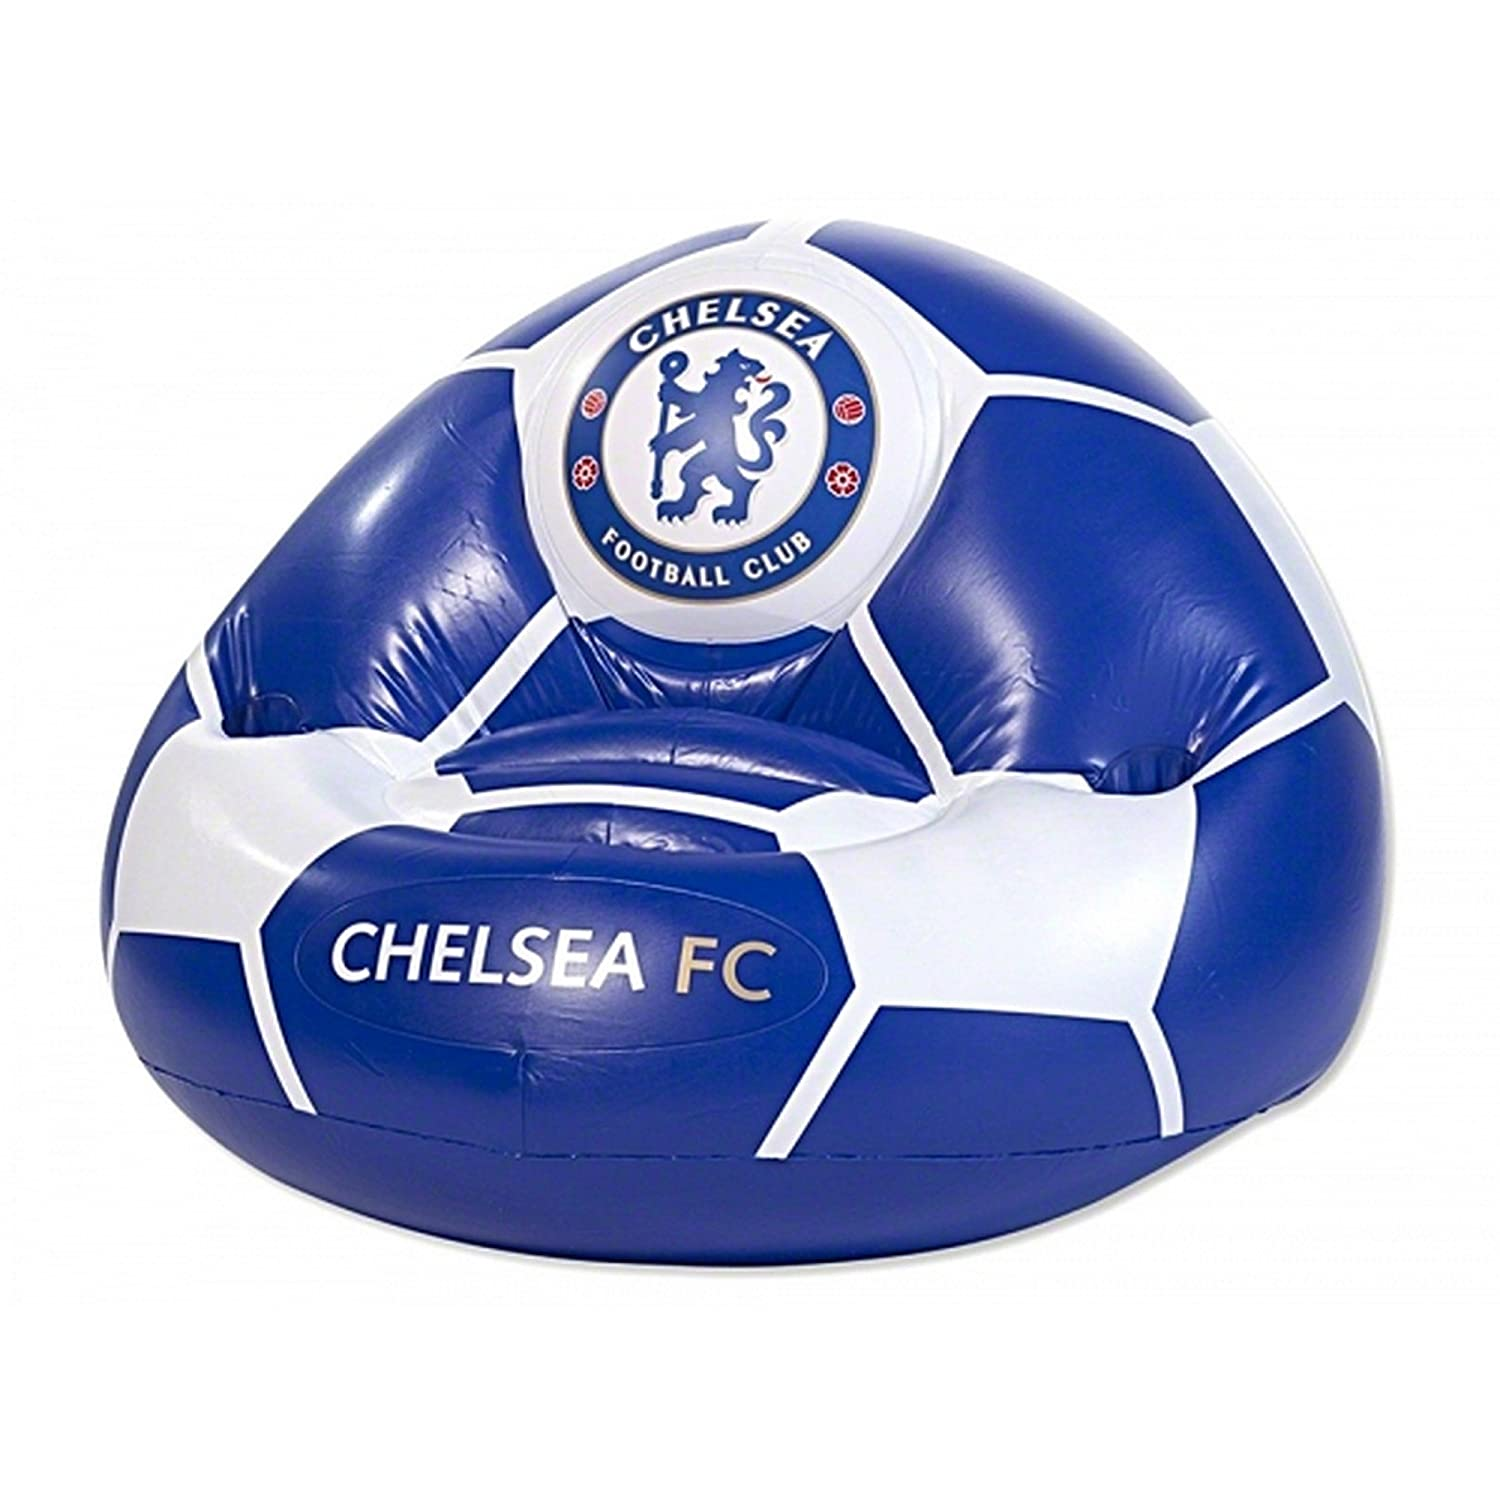 Chelsea FC Official Football Inflatable Chair (One Size) (Blue/White) UTBS196_1